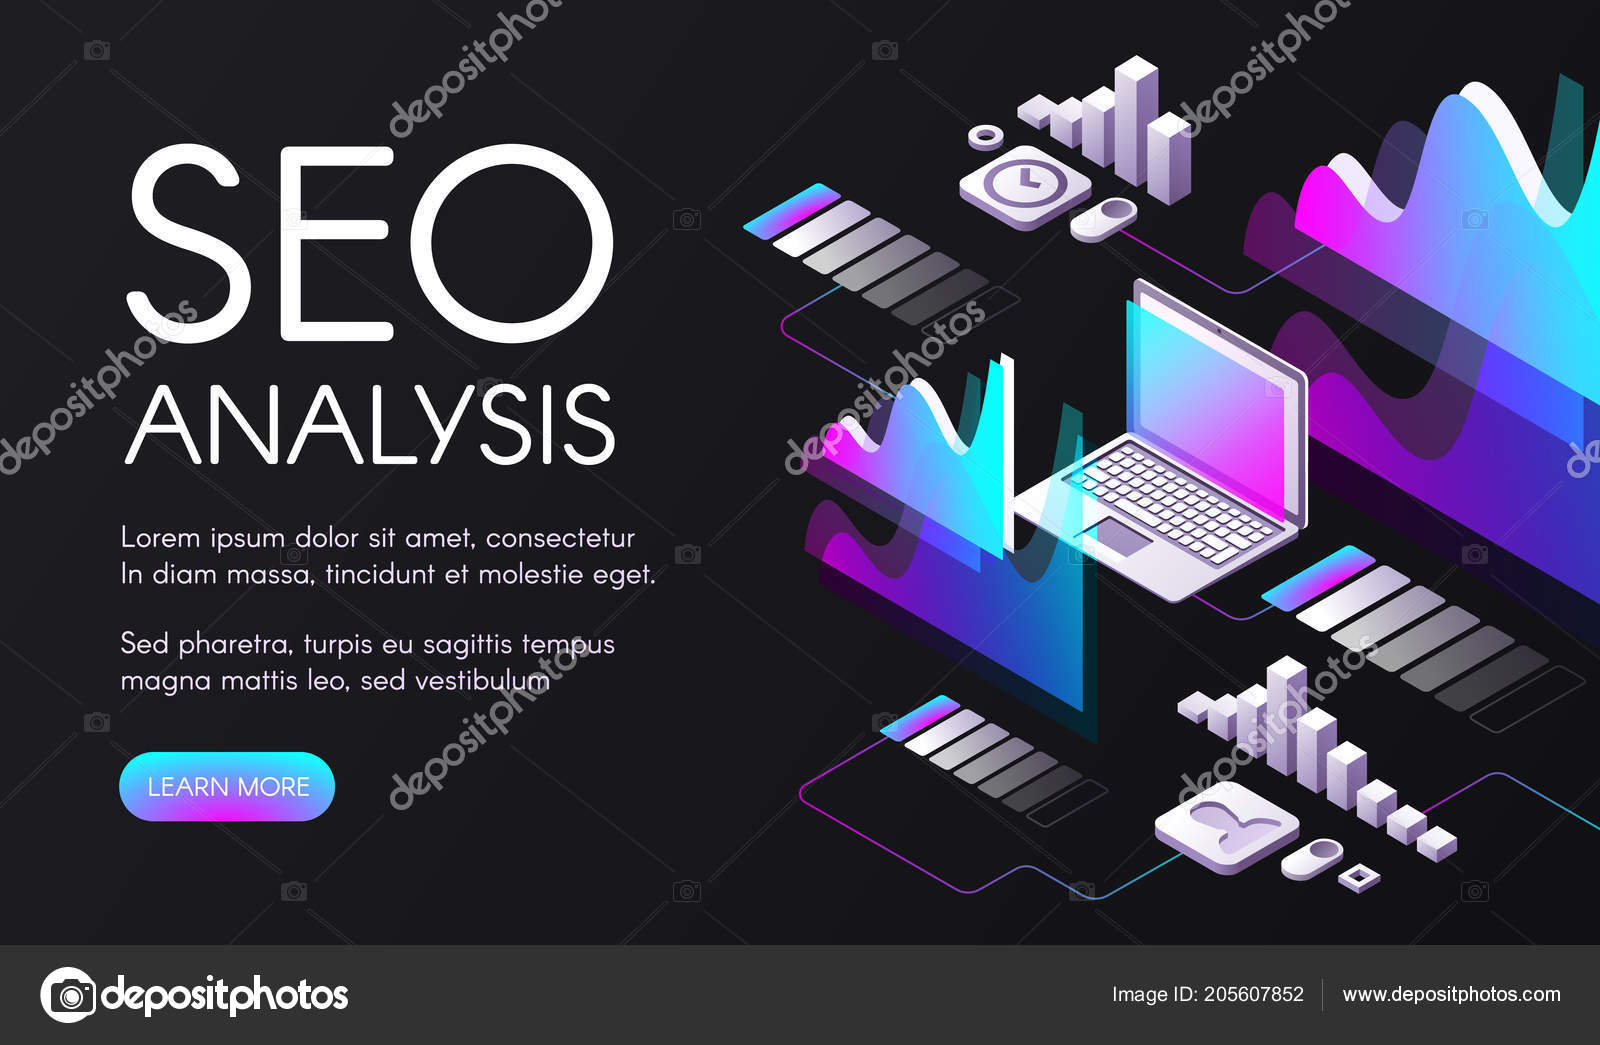 Seo Search Engine Optimization Vector Illustration Stock Diagram Analysis Of In Digital Marketing Ultraviolet Purple Diagrams And Flowcharts For User Requests